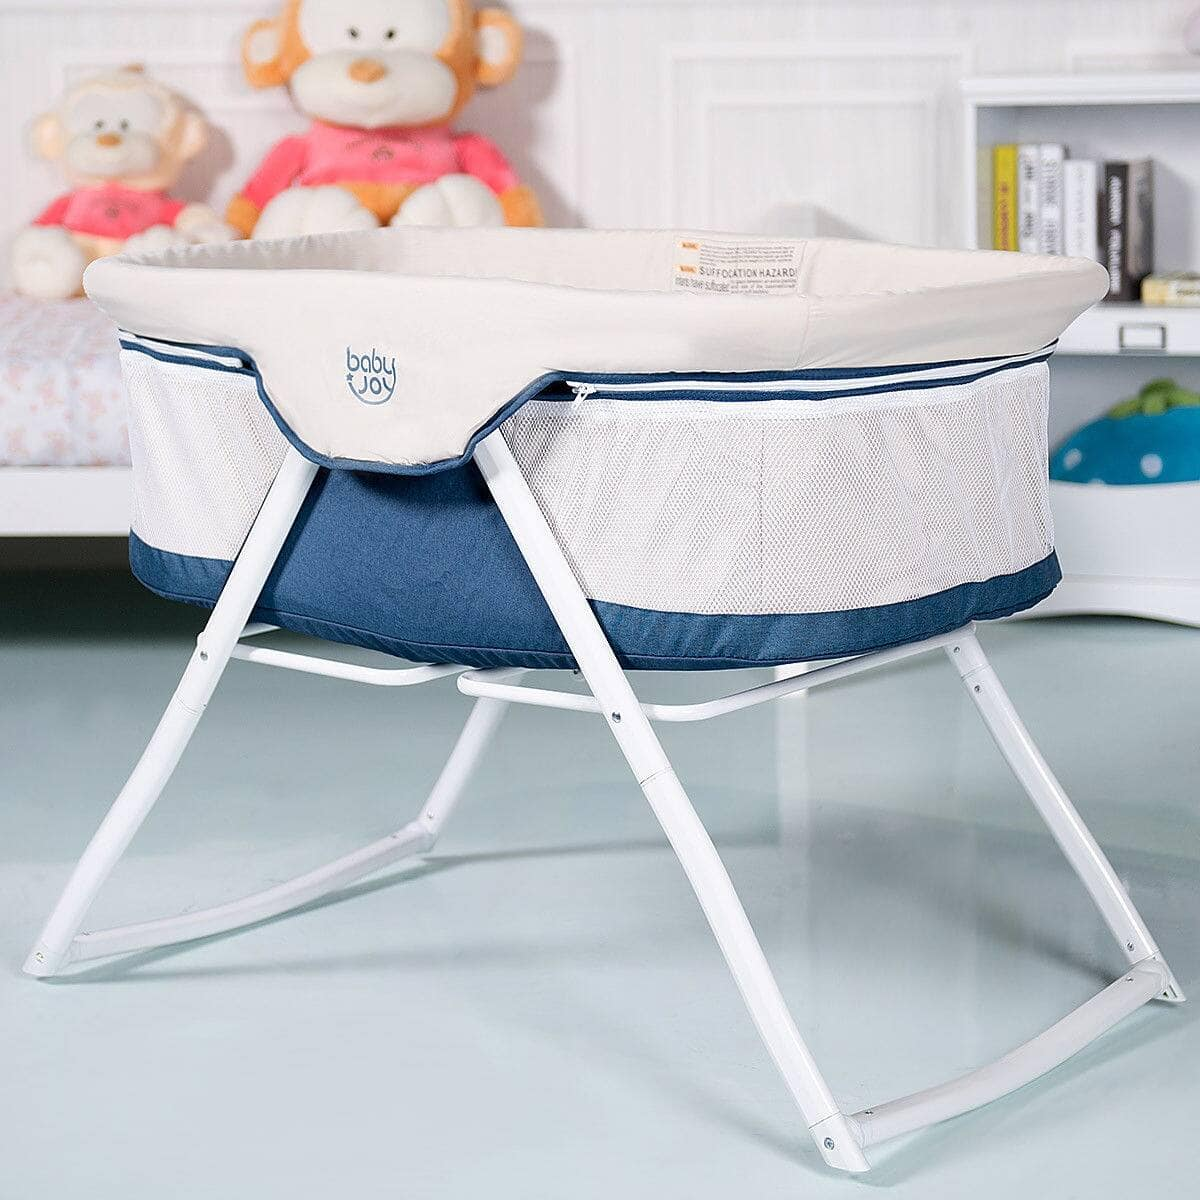 Portable Newborn Rocking Foldaway Baby Crib Bassinet $91.95 + Free Shipping